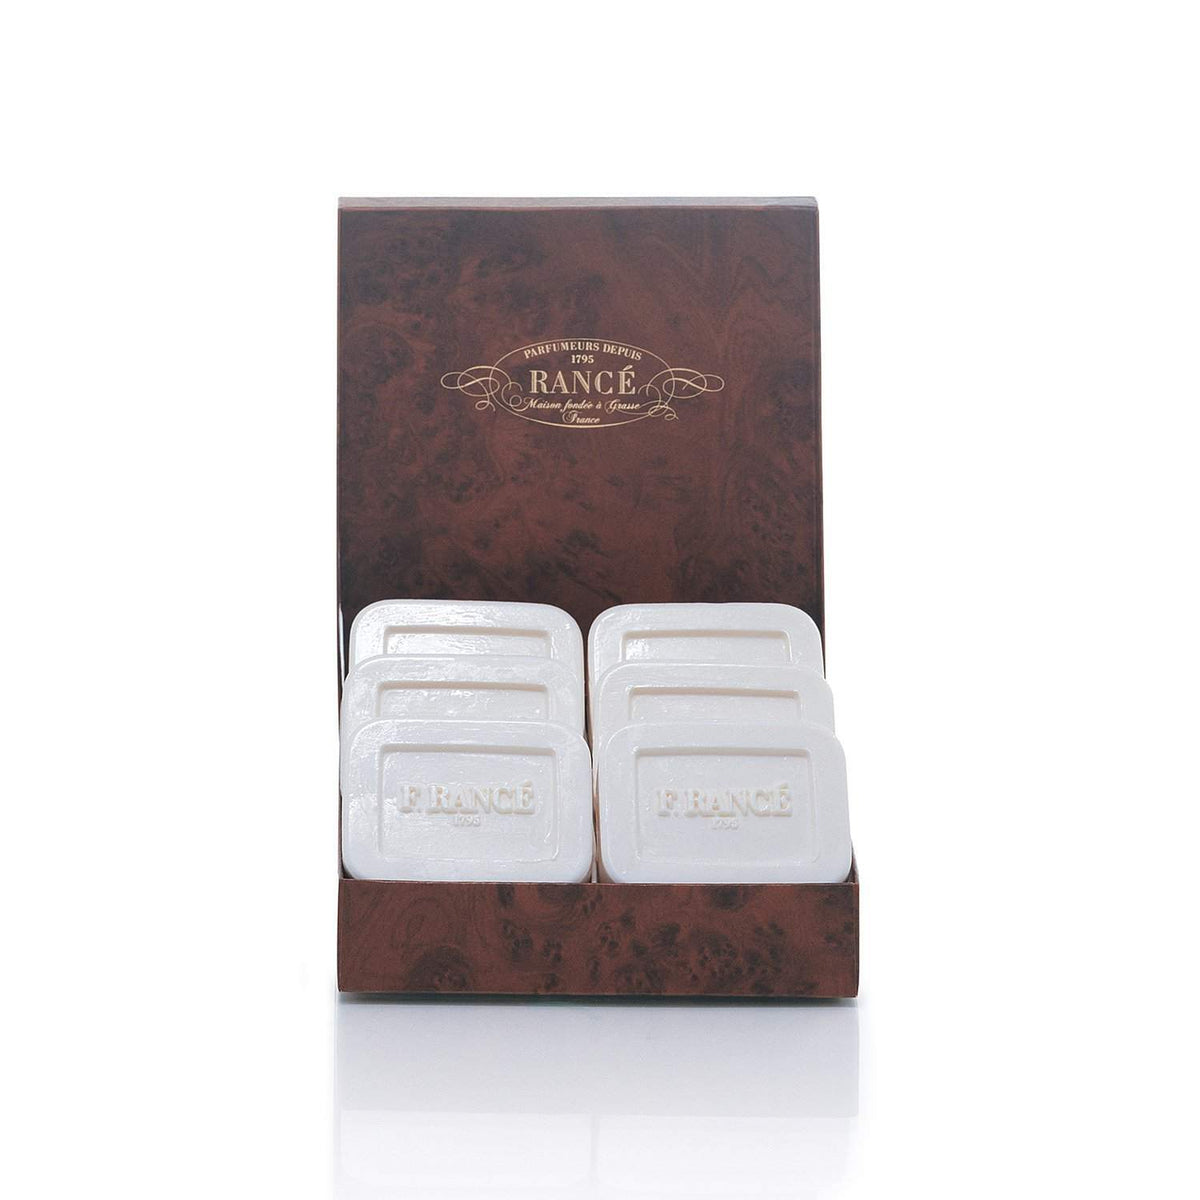 Rance Soaps F Rance Classic Soap Box-Rance Soaps-Oak Manor Fragrances